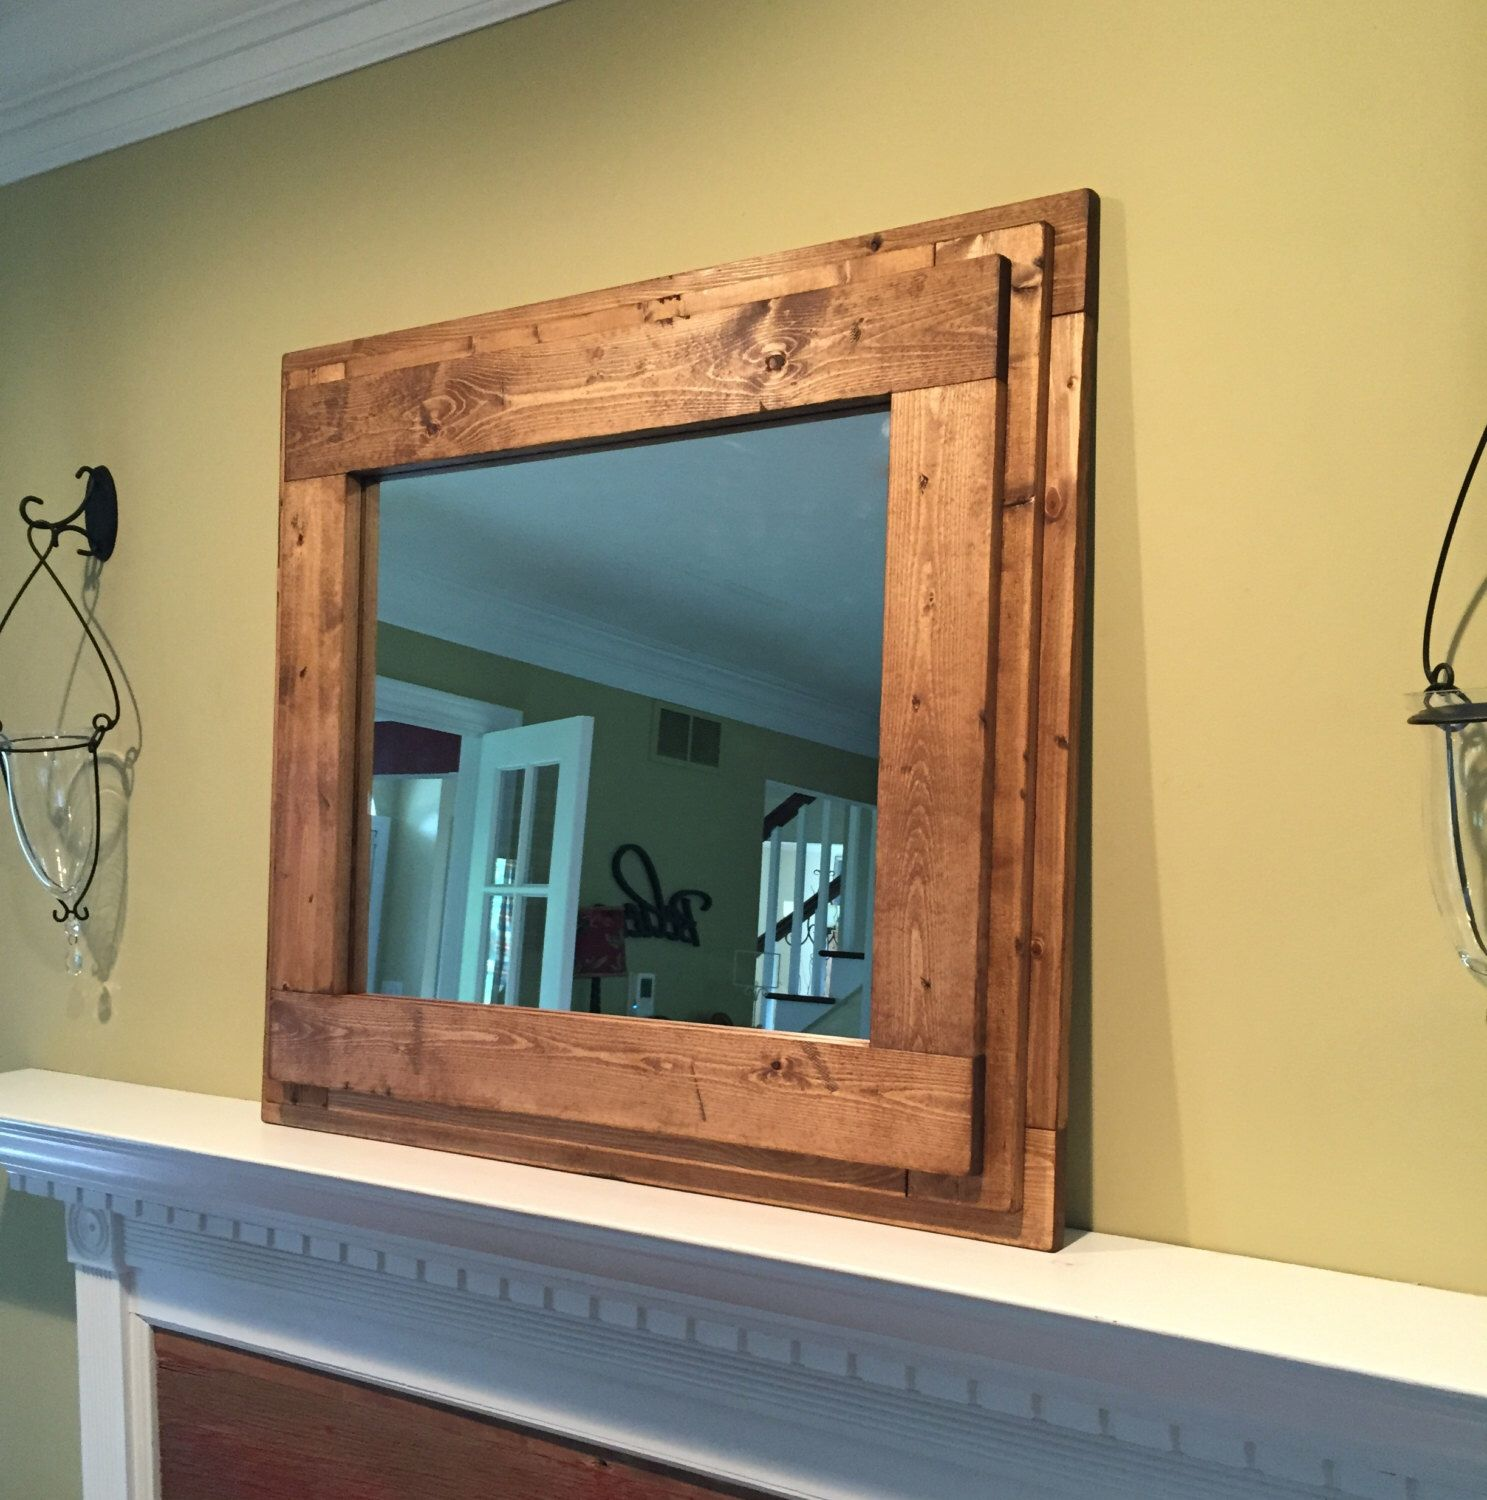 The farm house mantle vanity bathroom mirror handmade rustic bathroom mirror frames which is very easy and cost effective with a mirror section attached to the wall as well as a wooden frame surrounding it special jeuxipadfo Gallery